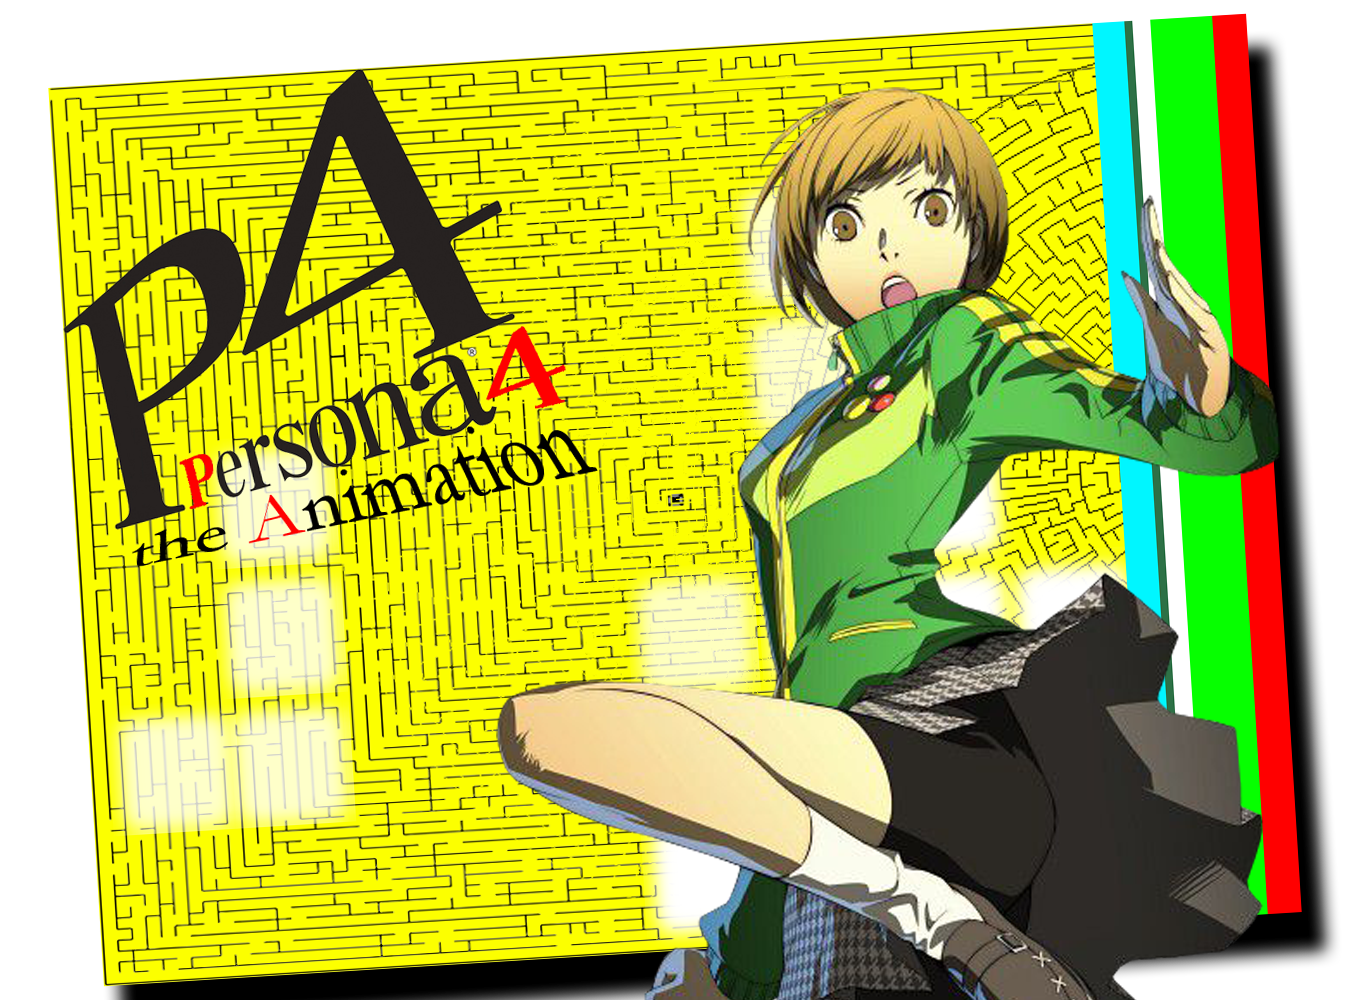 Persona 4 Characters Persona 4 The Animation